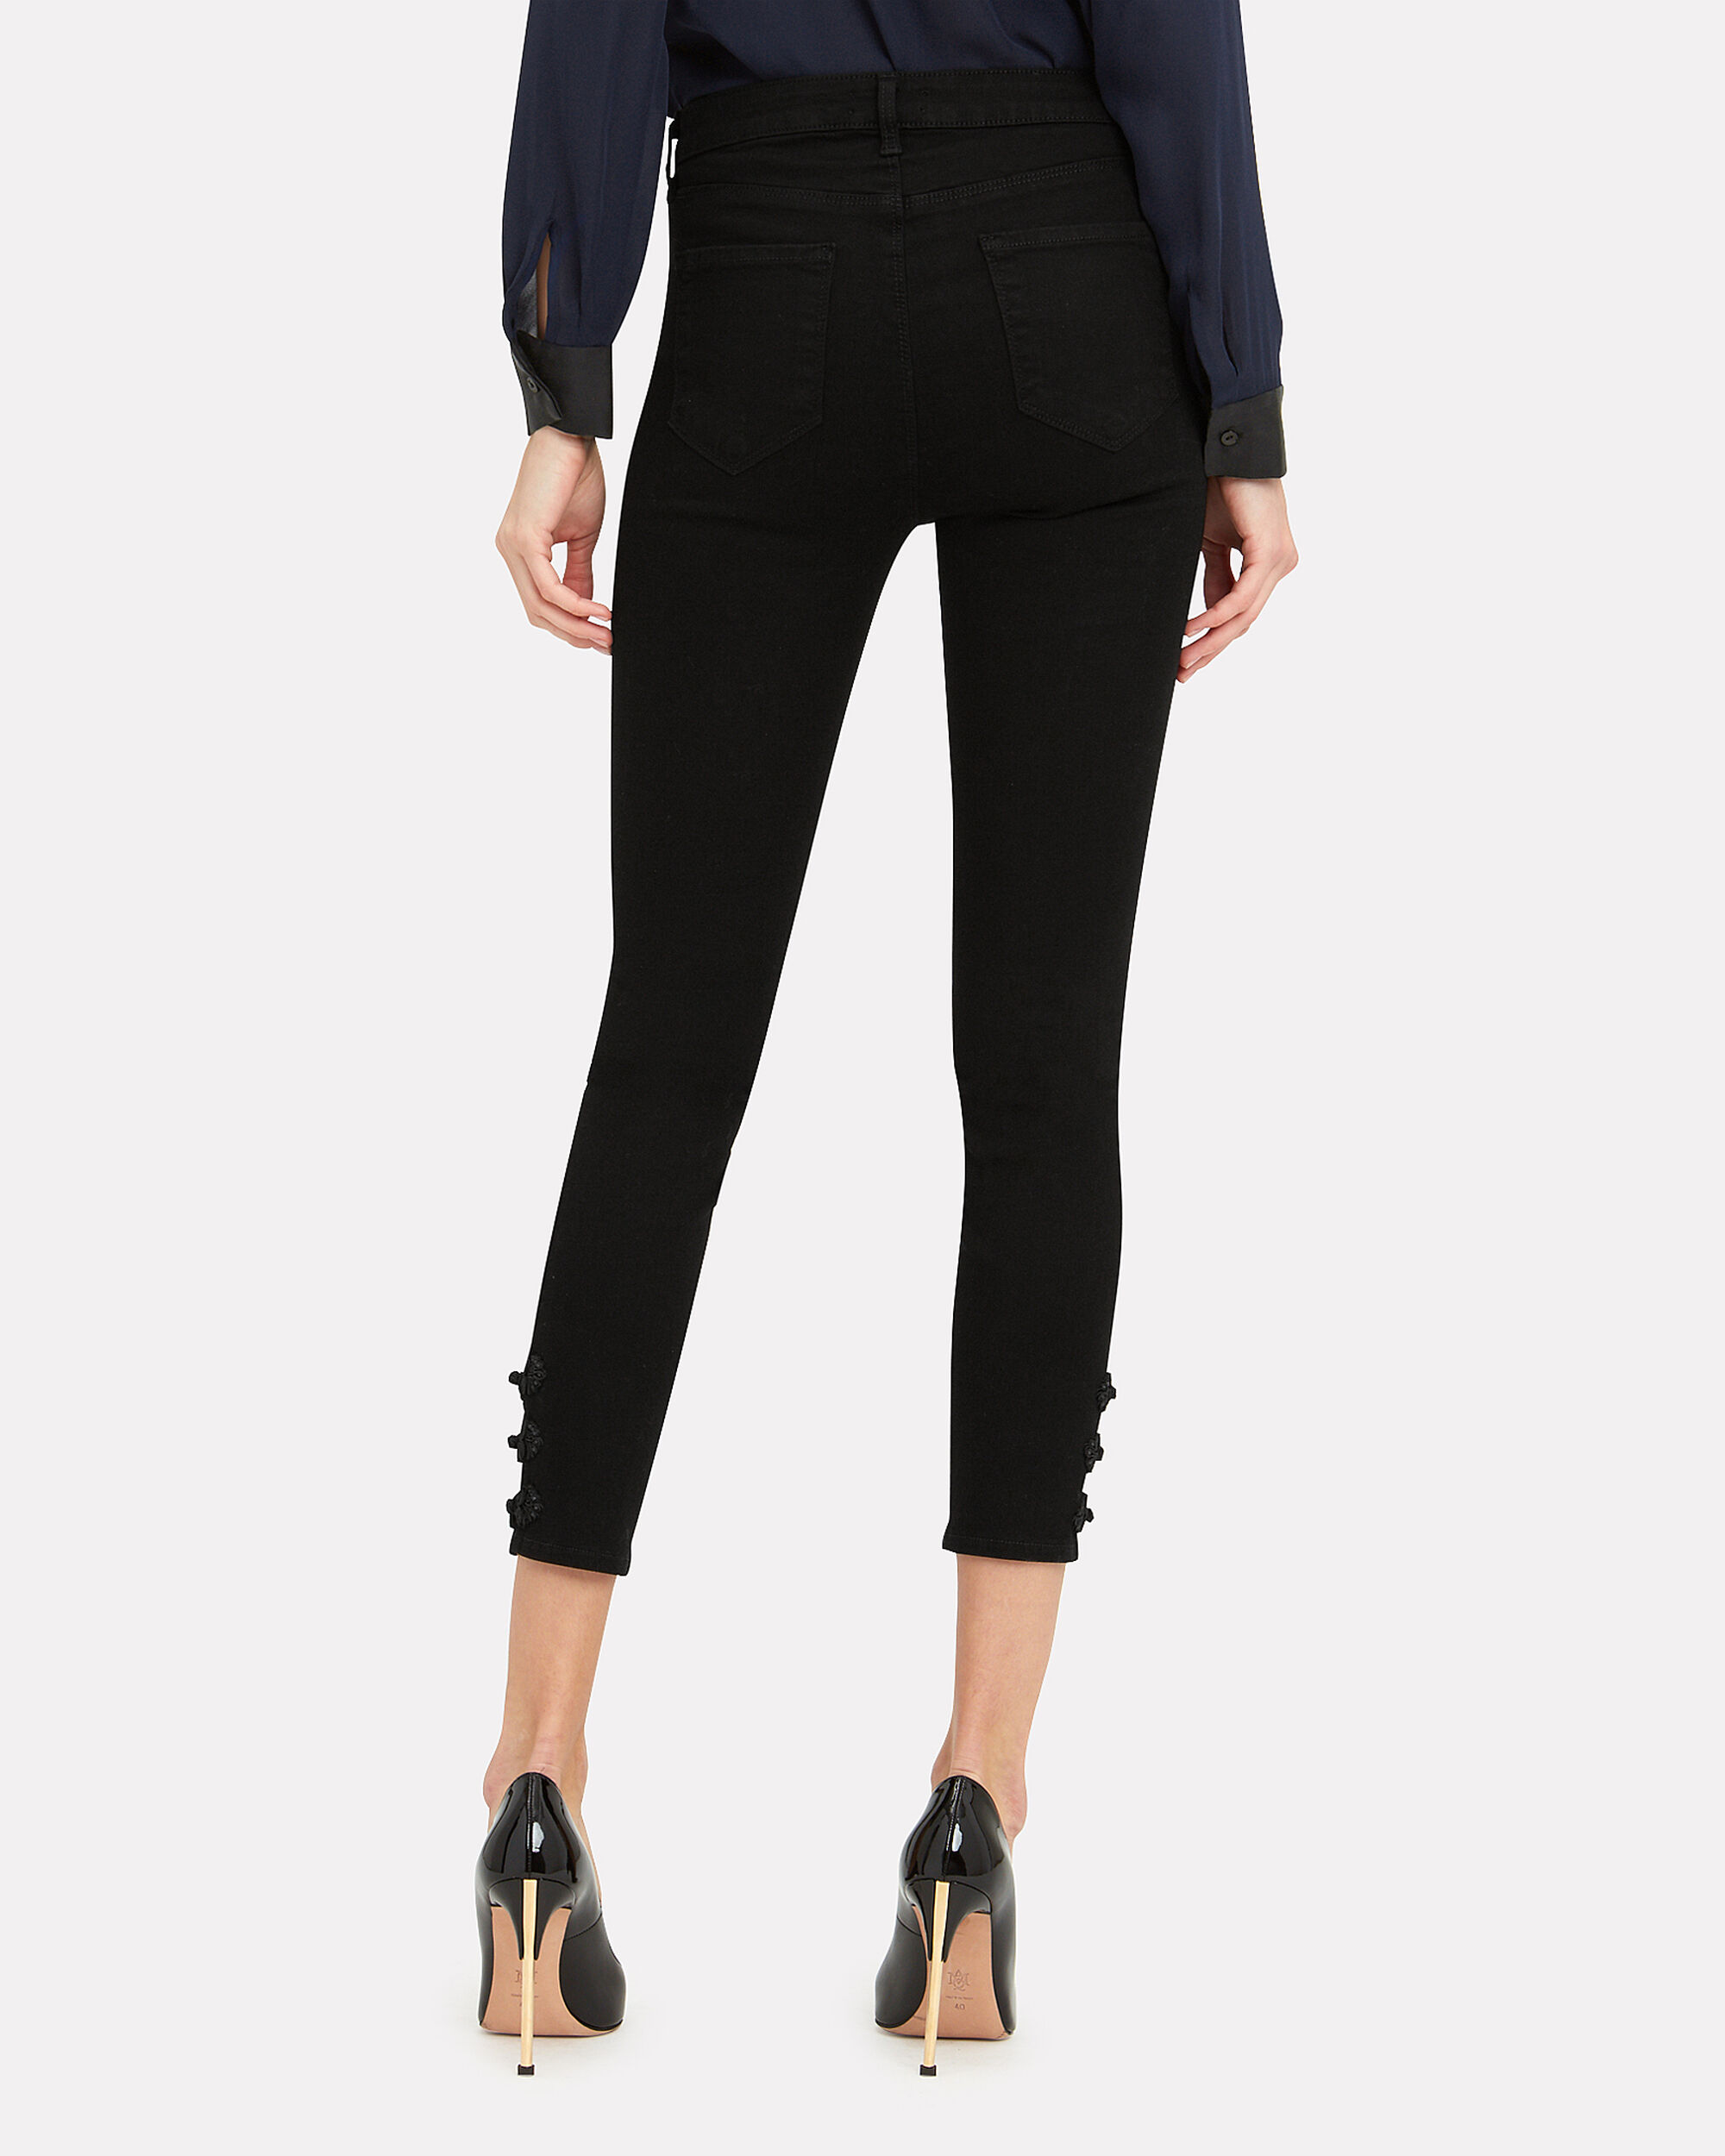 Margot Braided Detail High-Rise Ankle Skinny Jeans, BLACK, hi-res